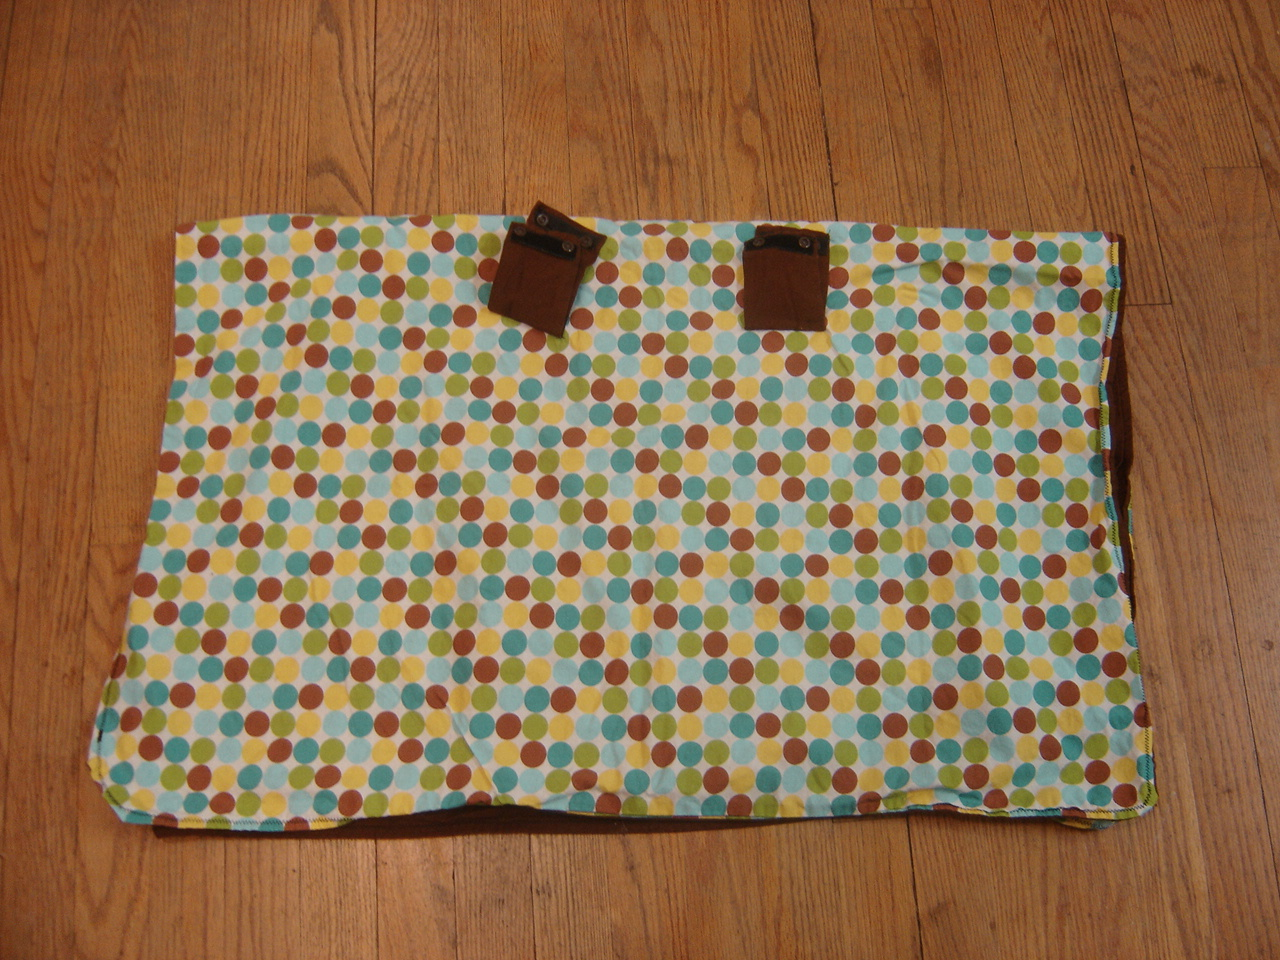 Unbranded Polka DotsBrown Infant Car Seat Cover 200036A